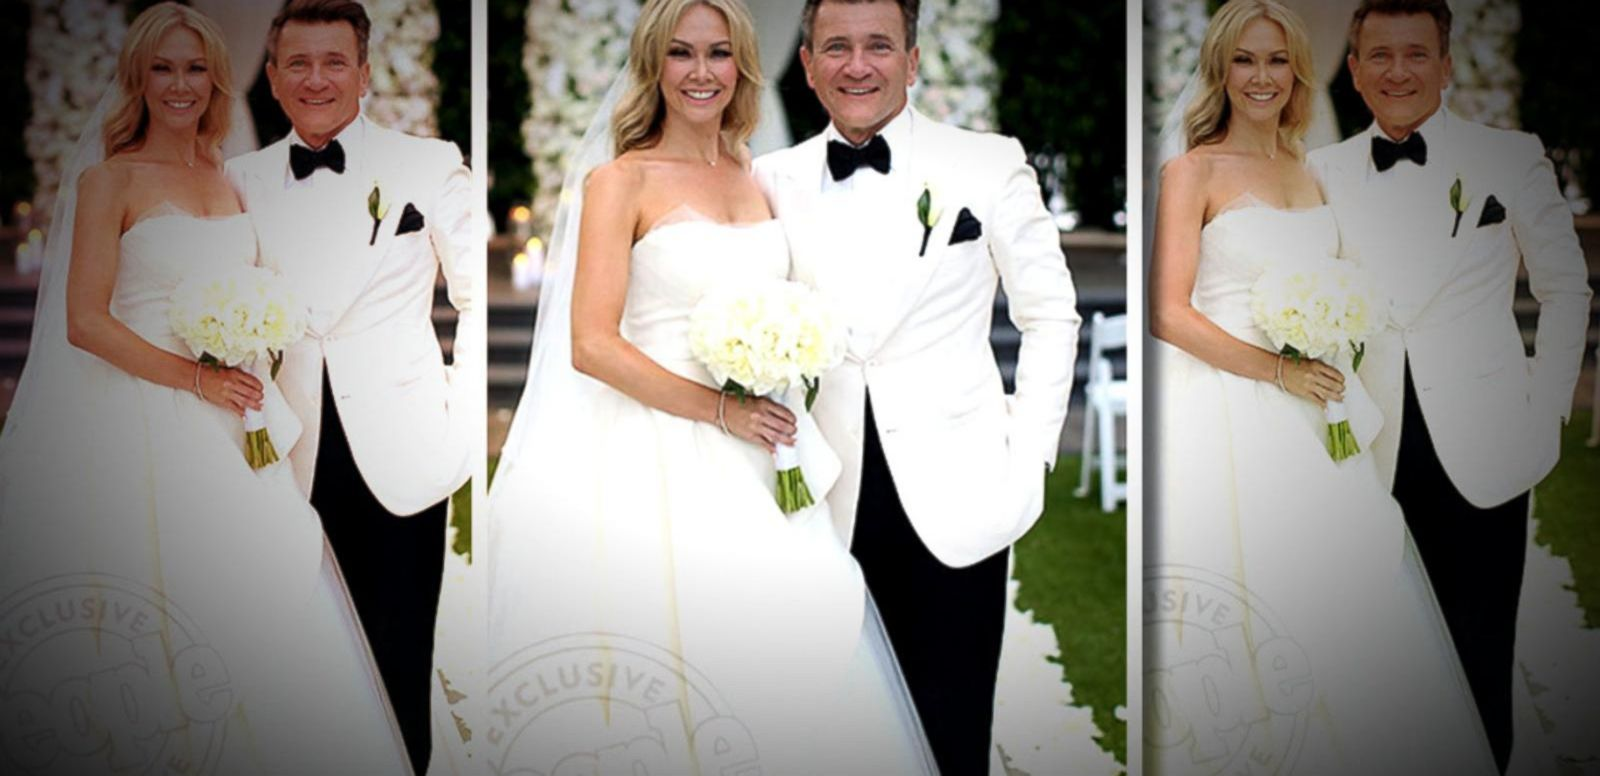 39 dancing with the stars 39 duo kym johnson and robert for Shark tank wedding dress